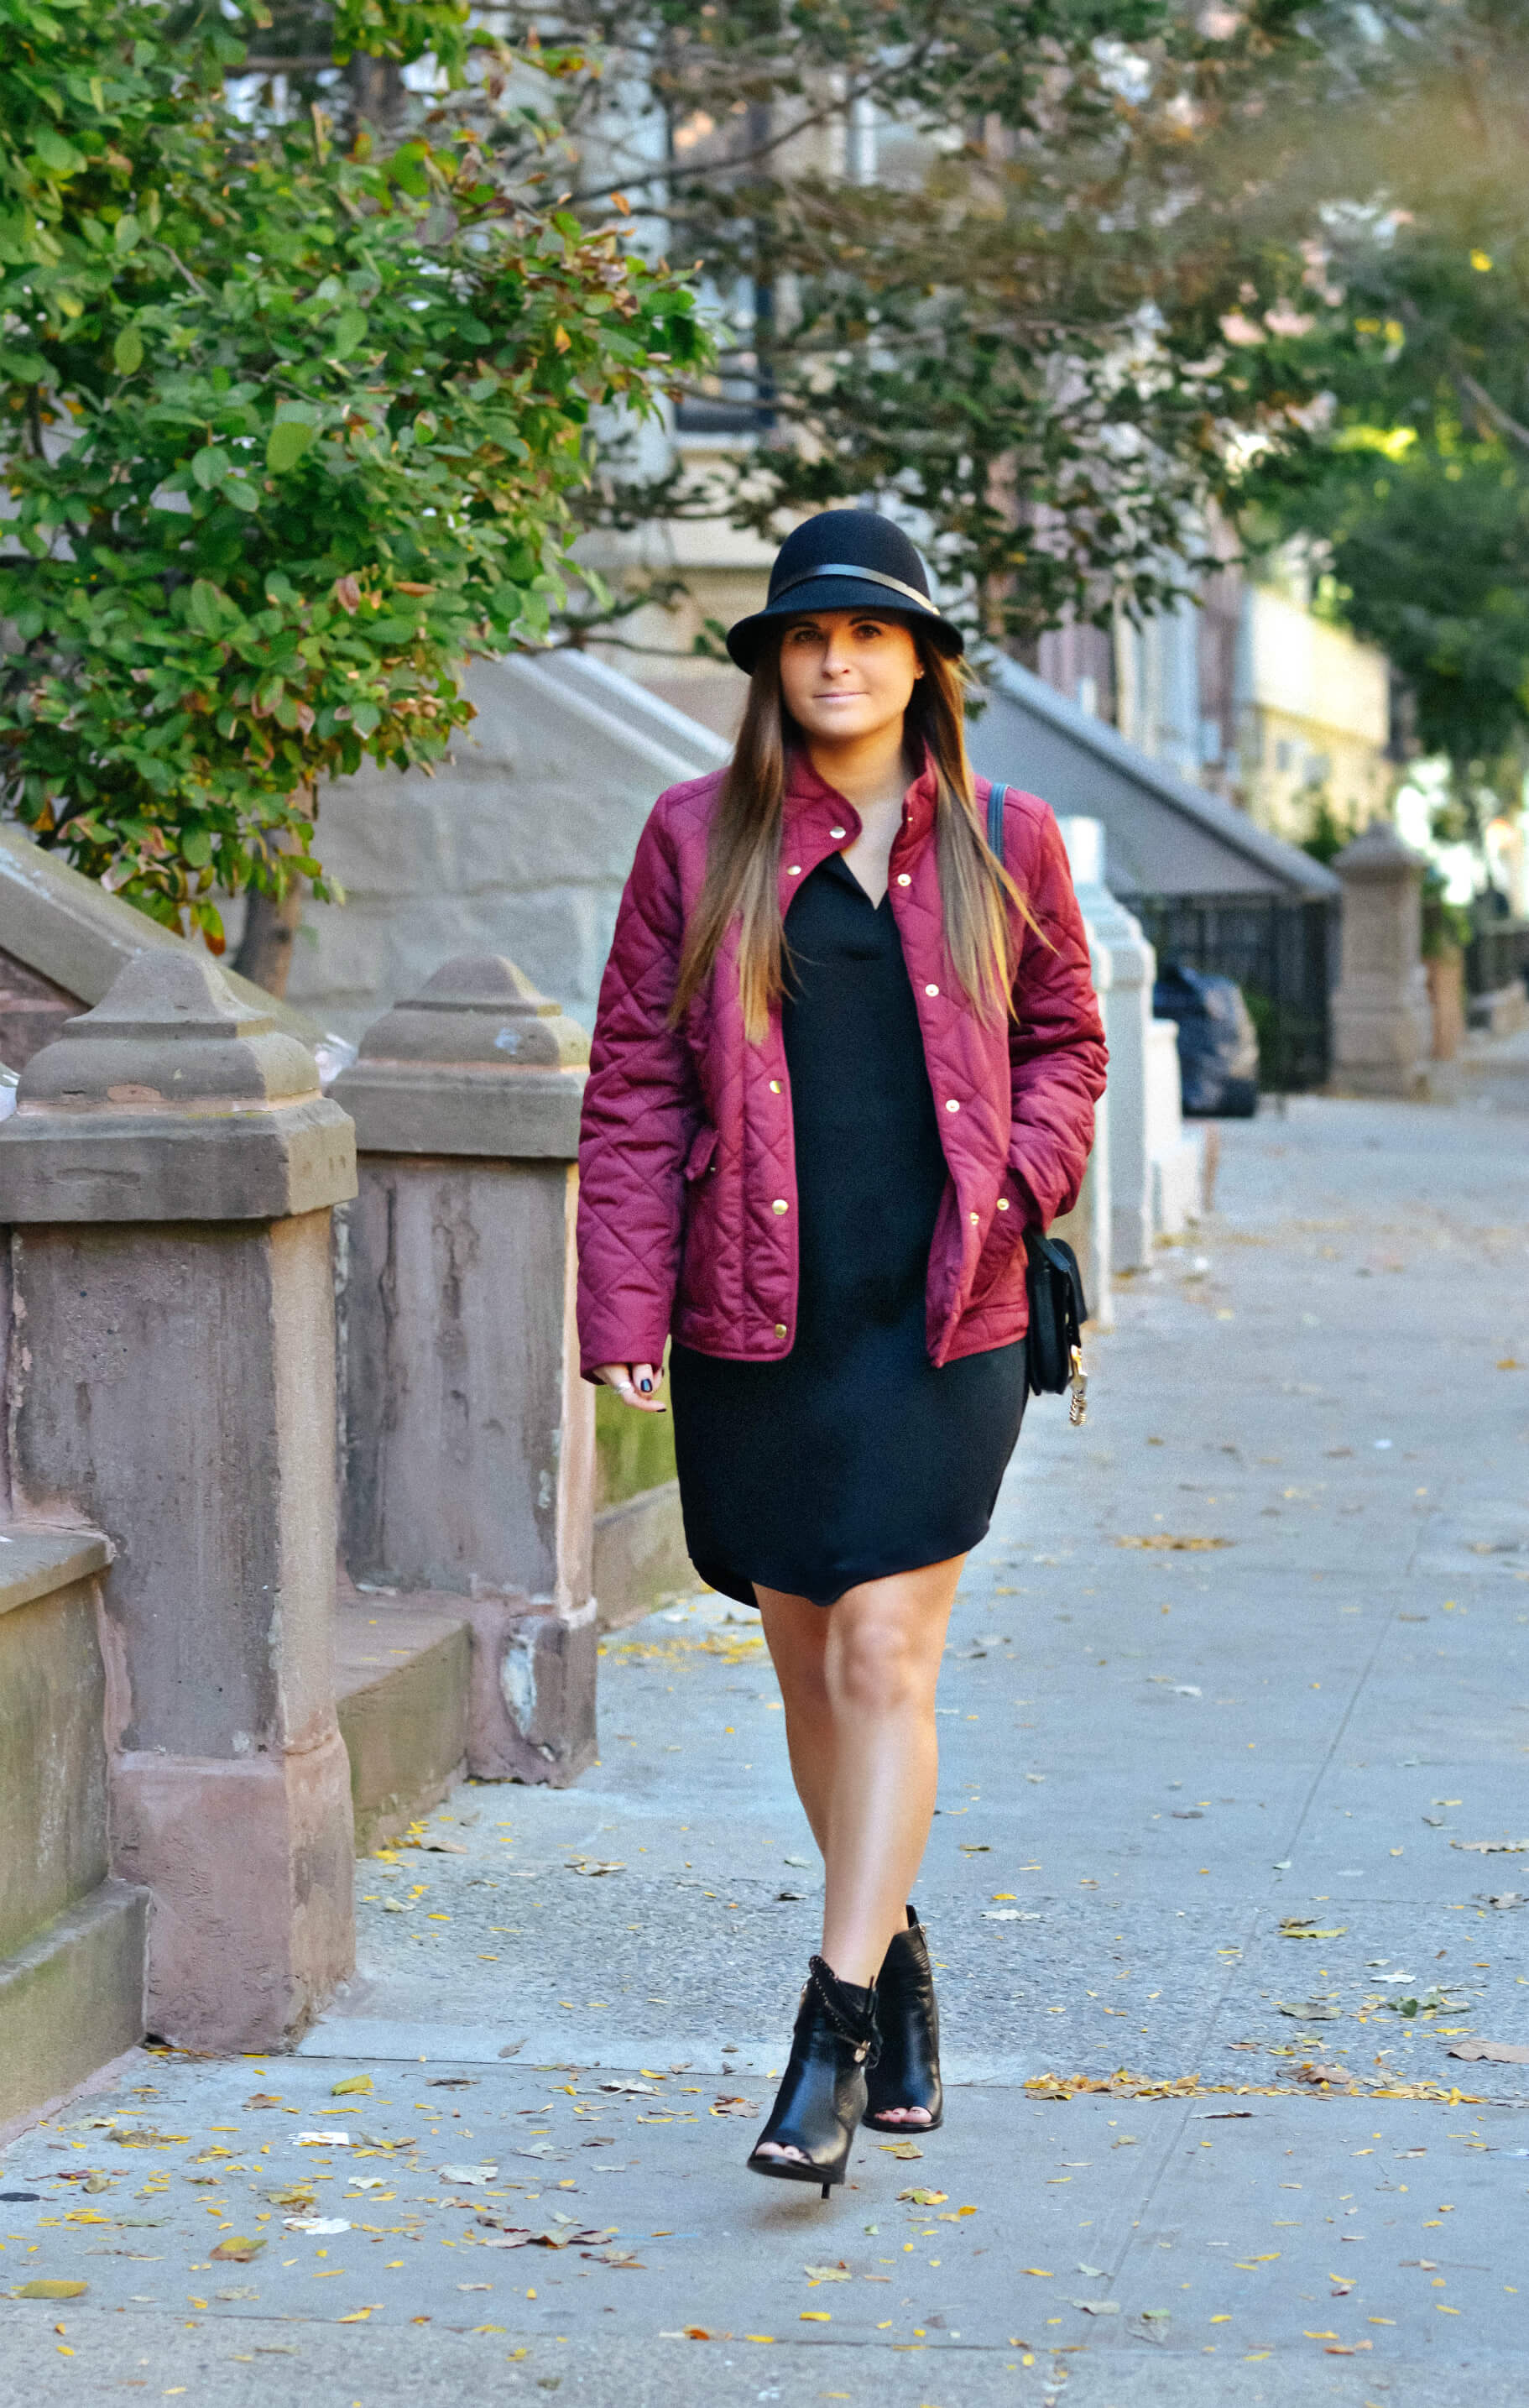 Fall Outfit Inspiration, Burgundy Jacket, Brim Hat, Tilden of To Be Bright